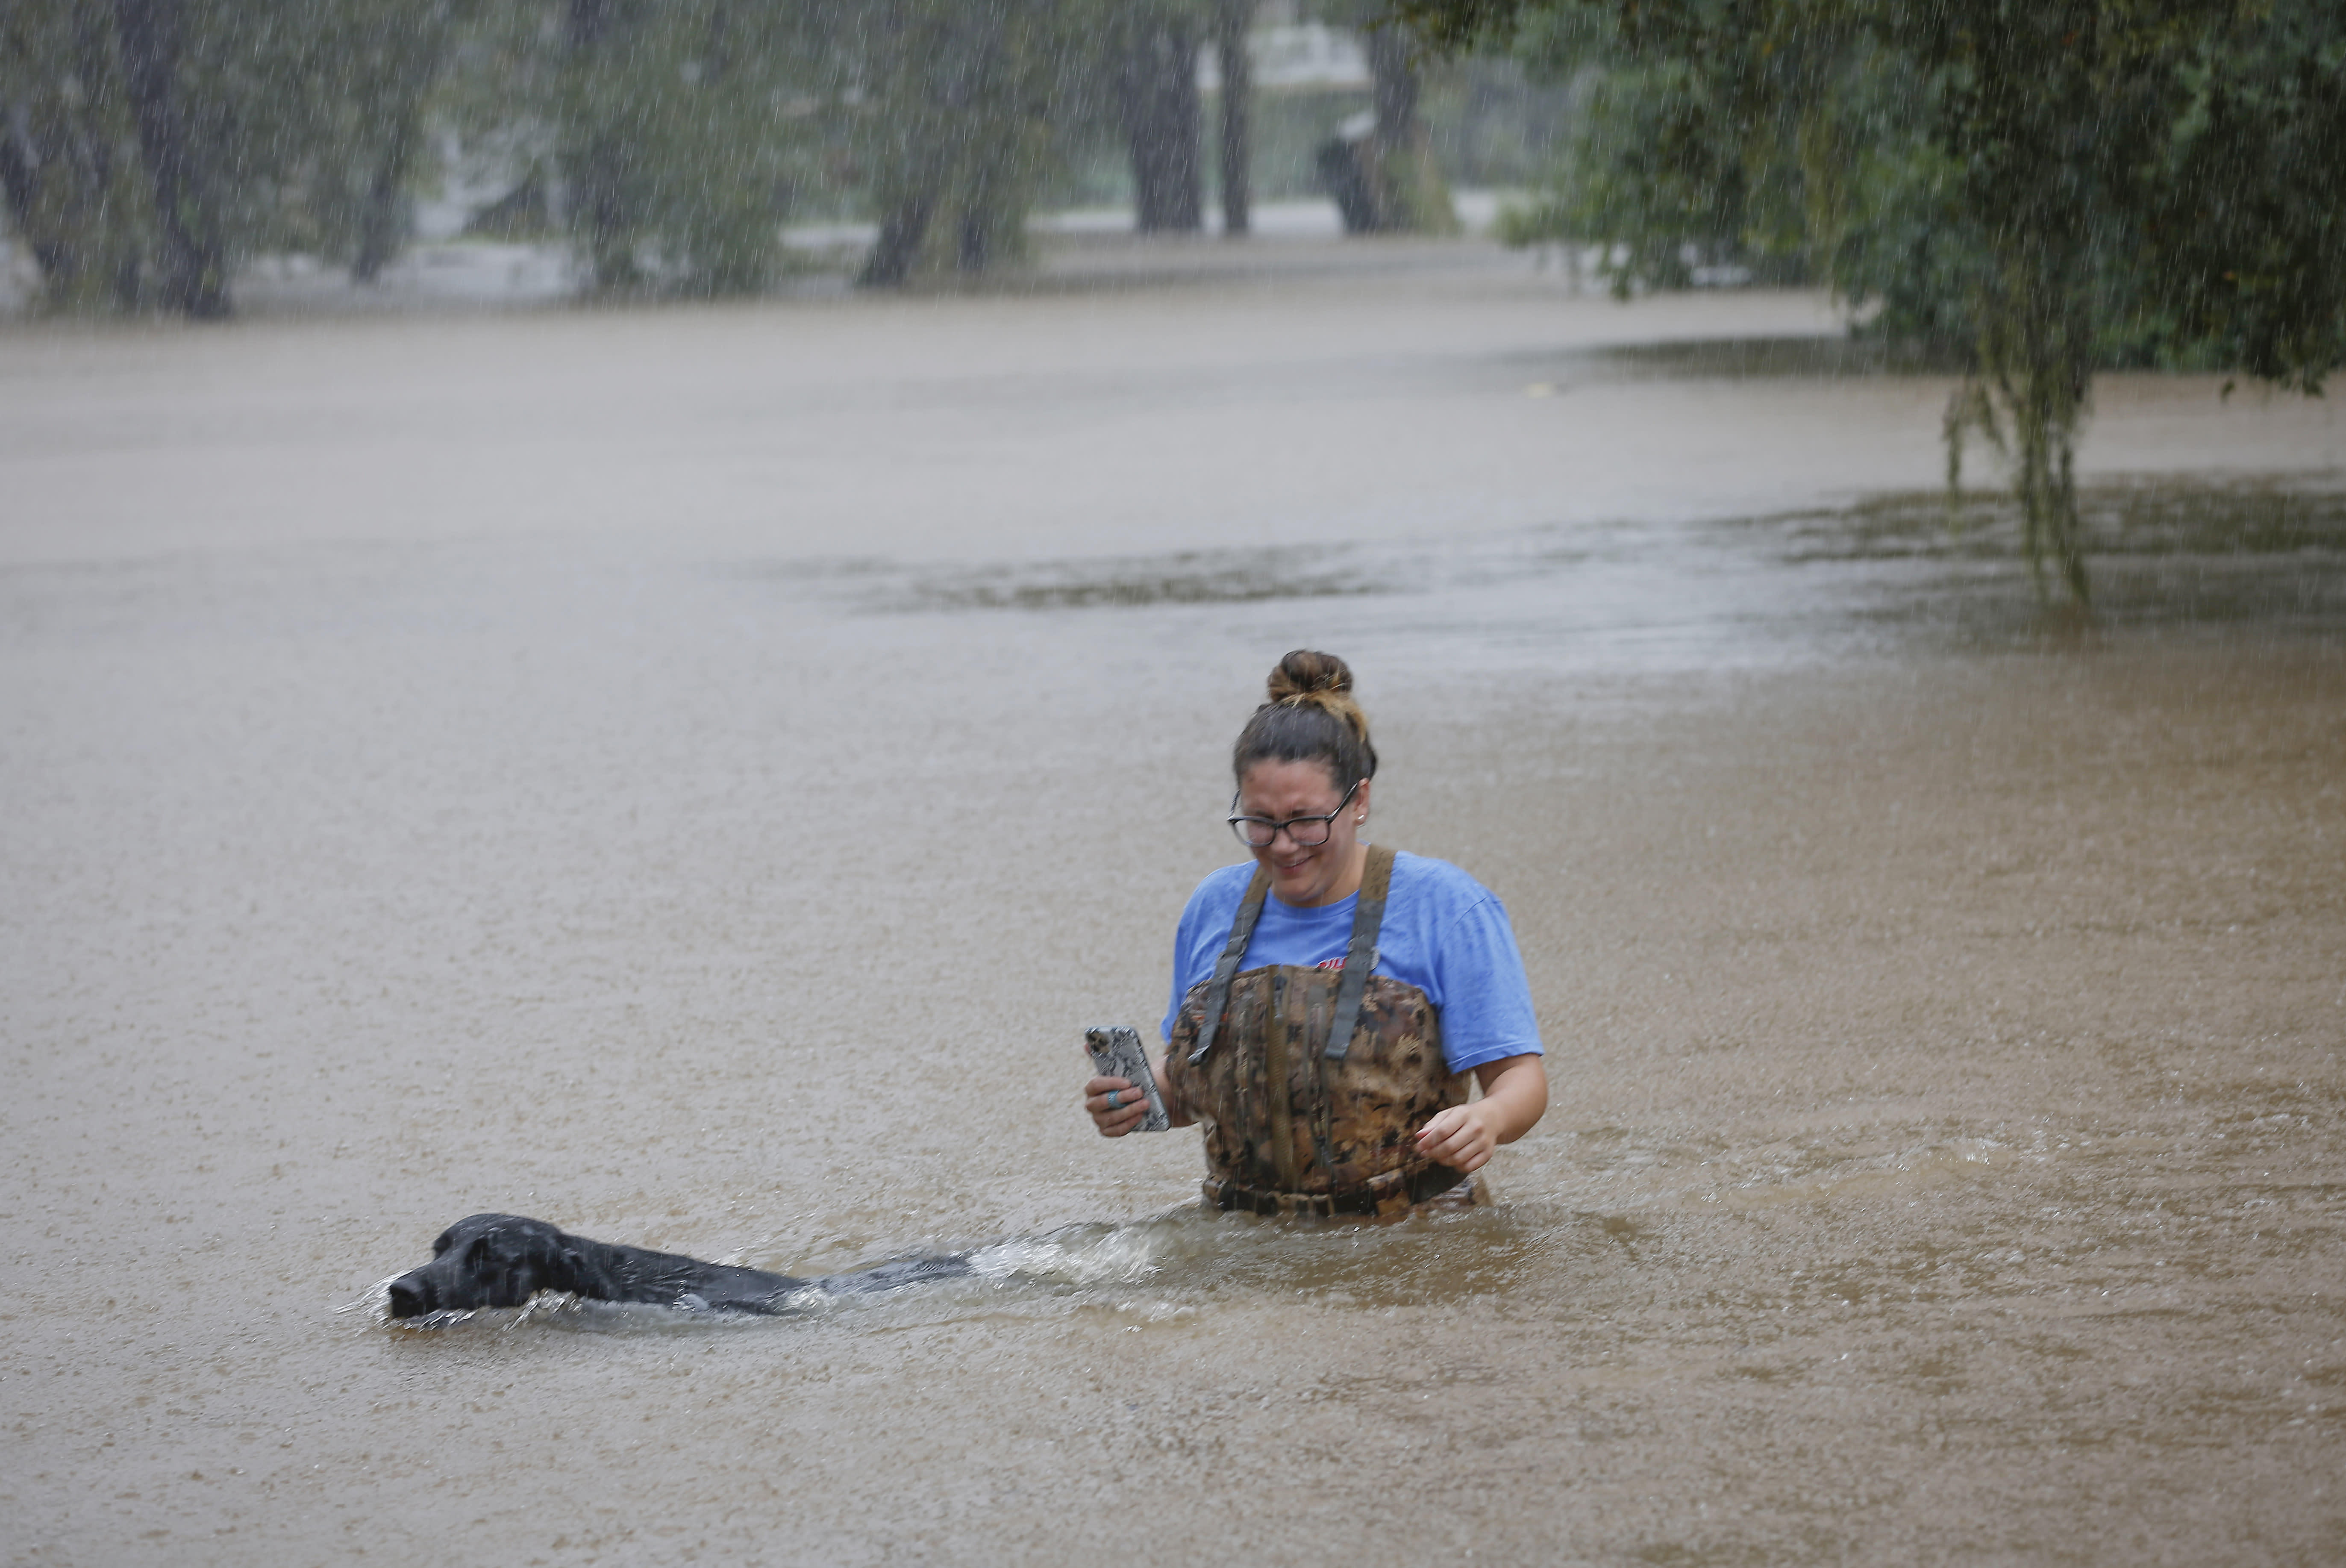 """Adelle Puma and her dog """"Ridge"""" makes their way from the submerged Mary Xing bridge over Marys Creek that leads into Clear Creek as Tropical Storm Beta rainfall trained over the area Tuesday, Sept. 22, 2020, in Friendswood, Texas. Puma and her husband just moved from Breaex Bridge, La., a moth ago and their home sits next to the bridge. (Steve Gonzales/Houston Chronicle via AP)"""